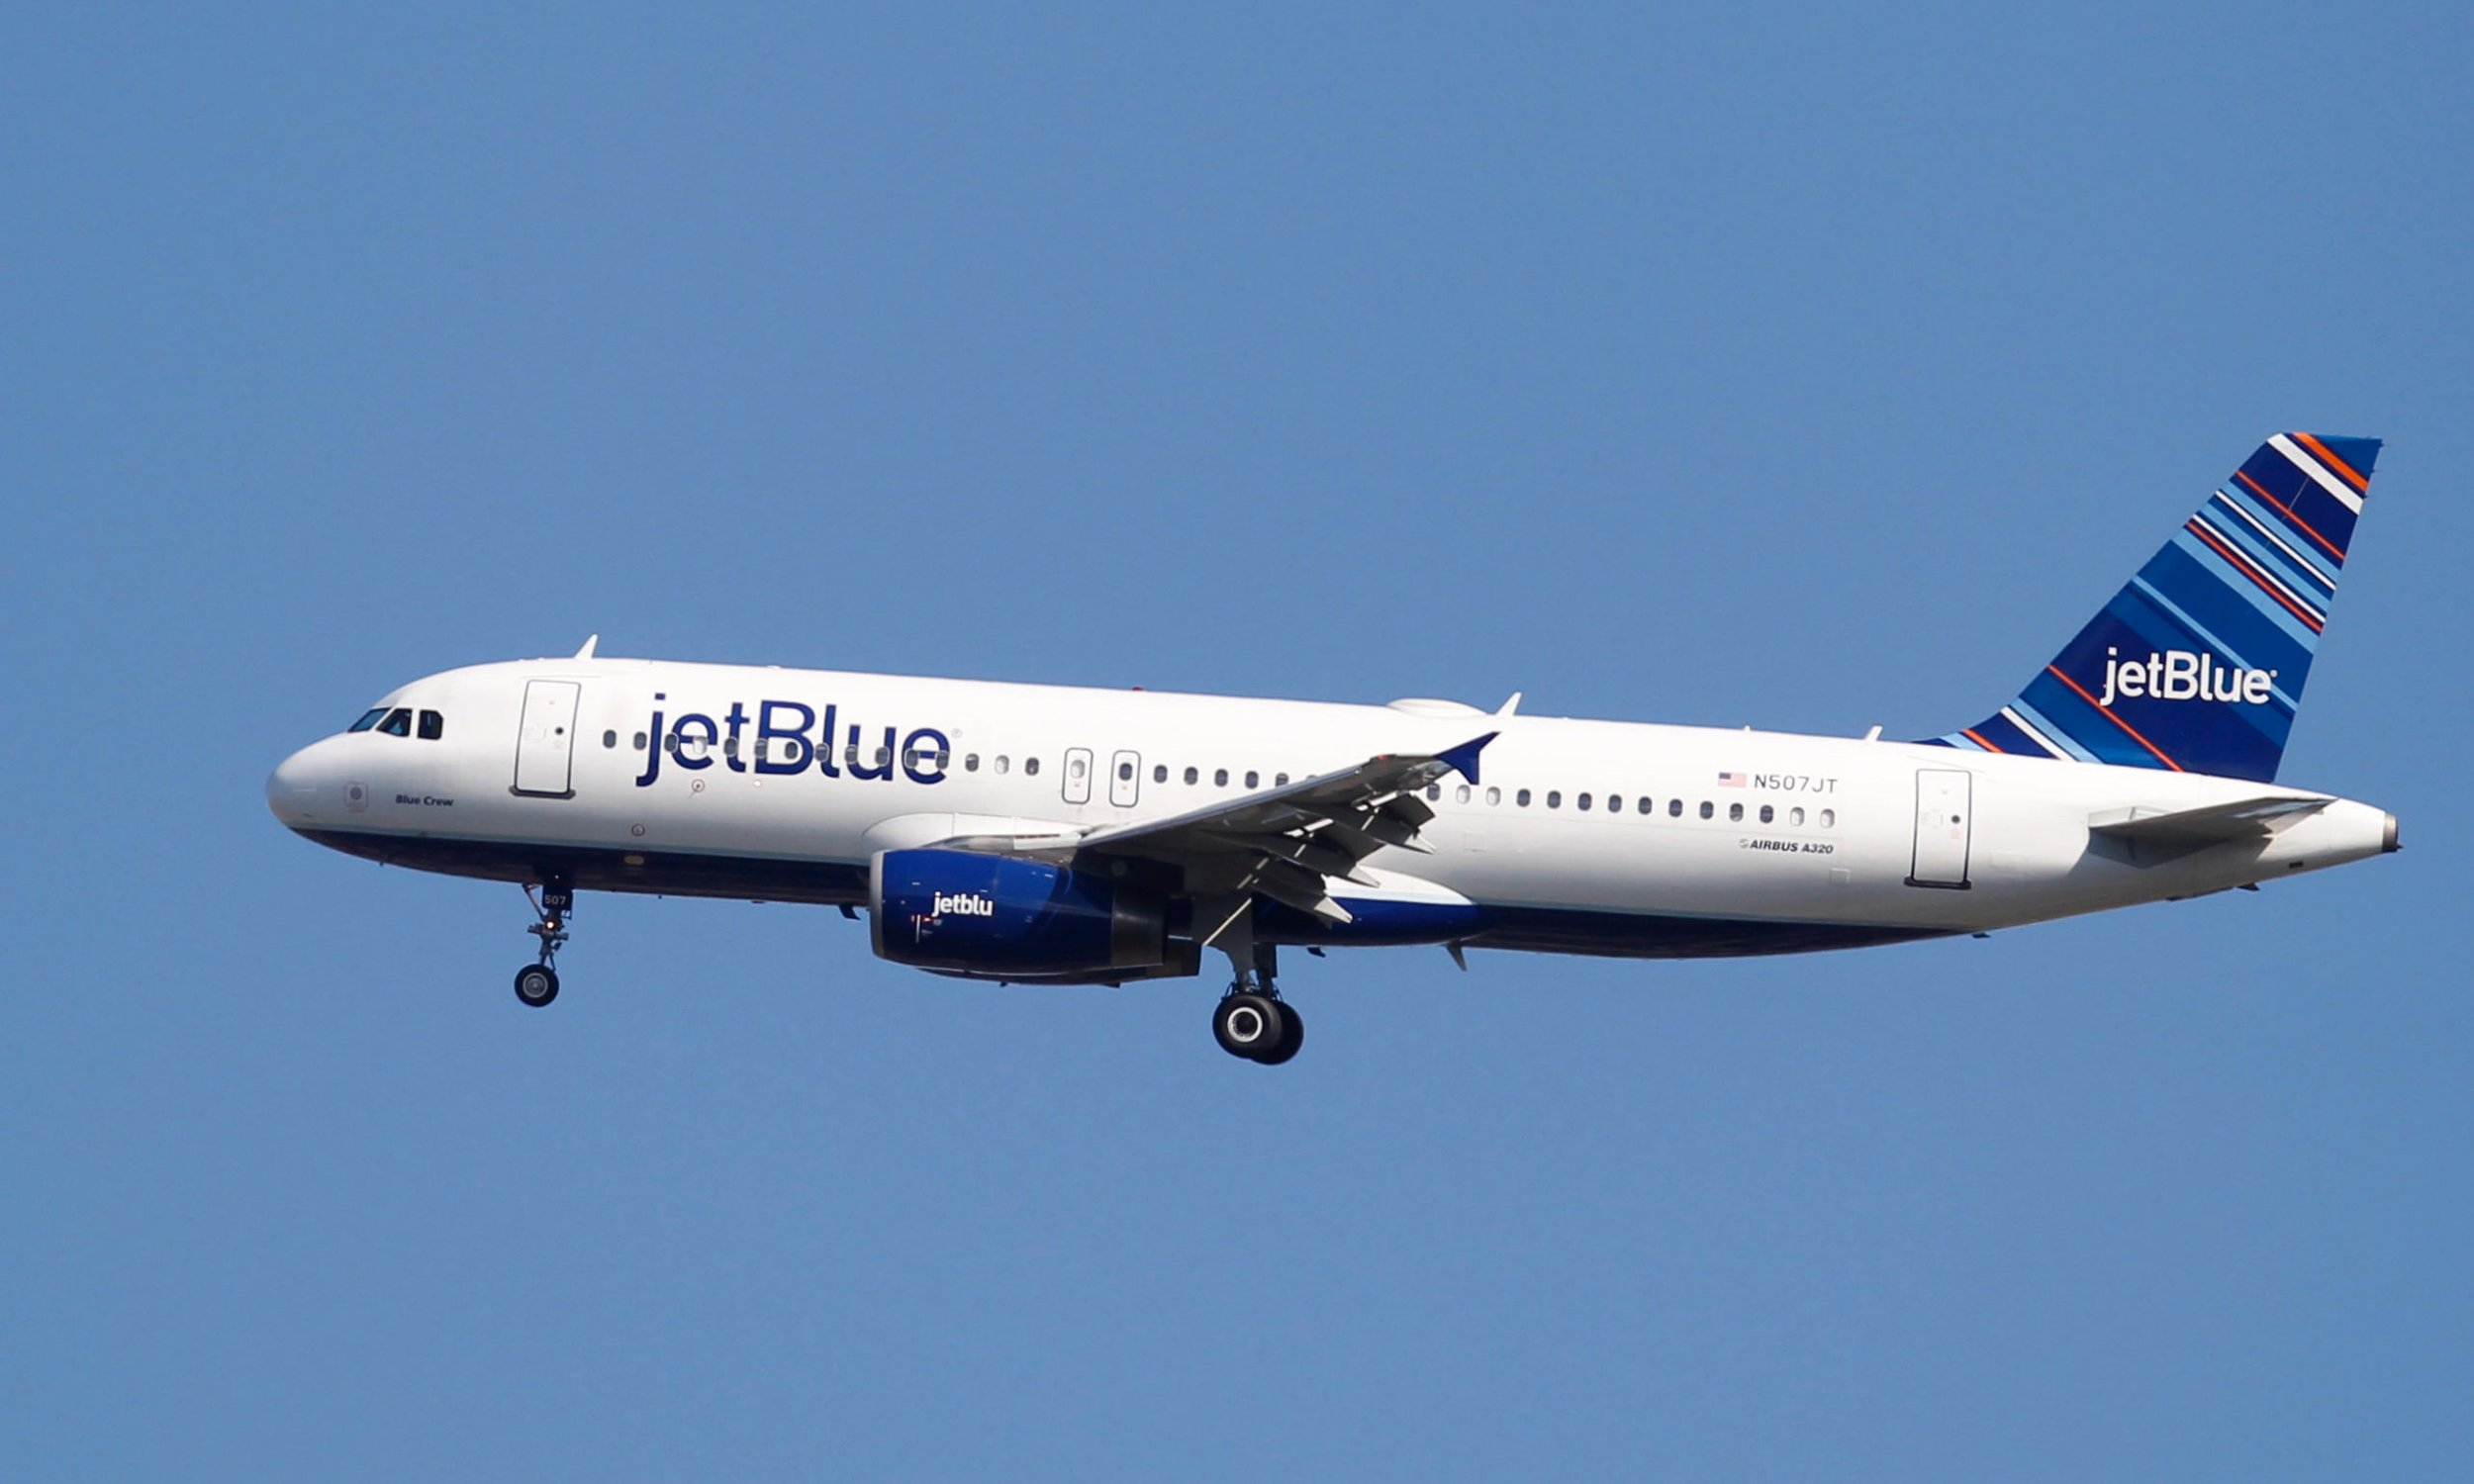 GHY9PJ A Jet Blue plane comes in for a landing at LaGuardia airport in New York, August 29, 2012. REUTERS/Lucas Jackson (UNITED STATES - Tags: TRANSPORT)